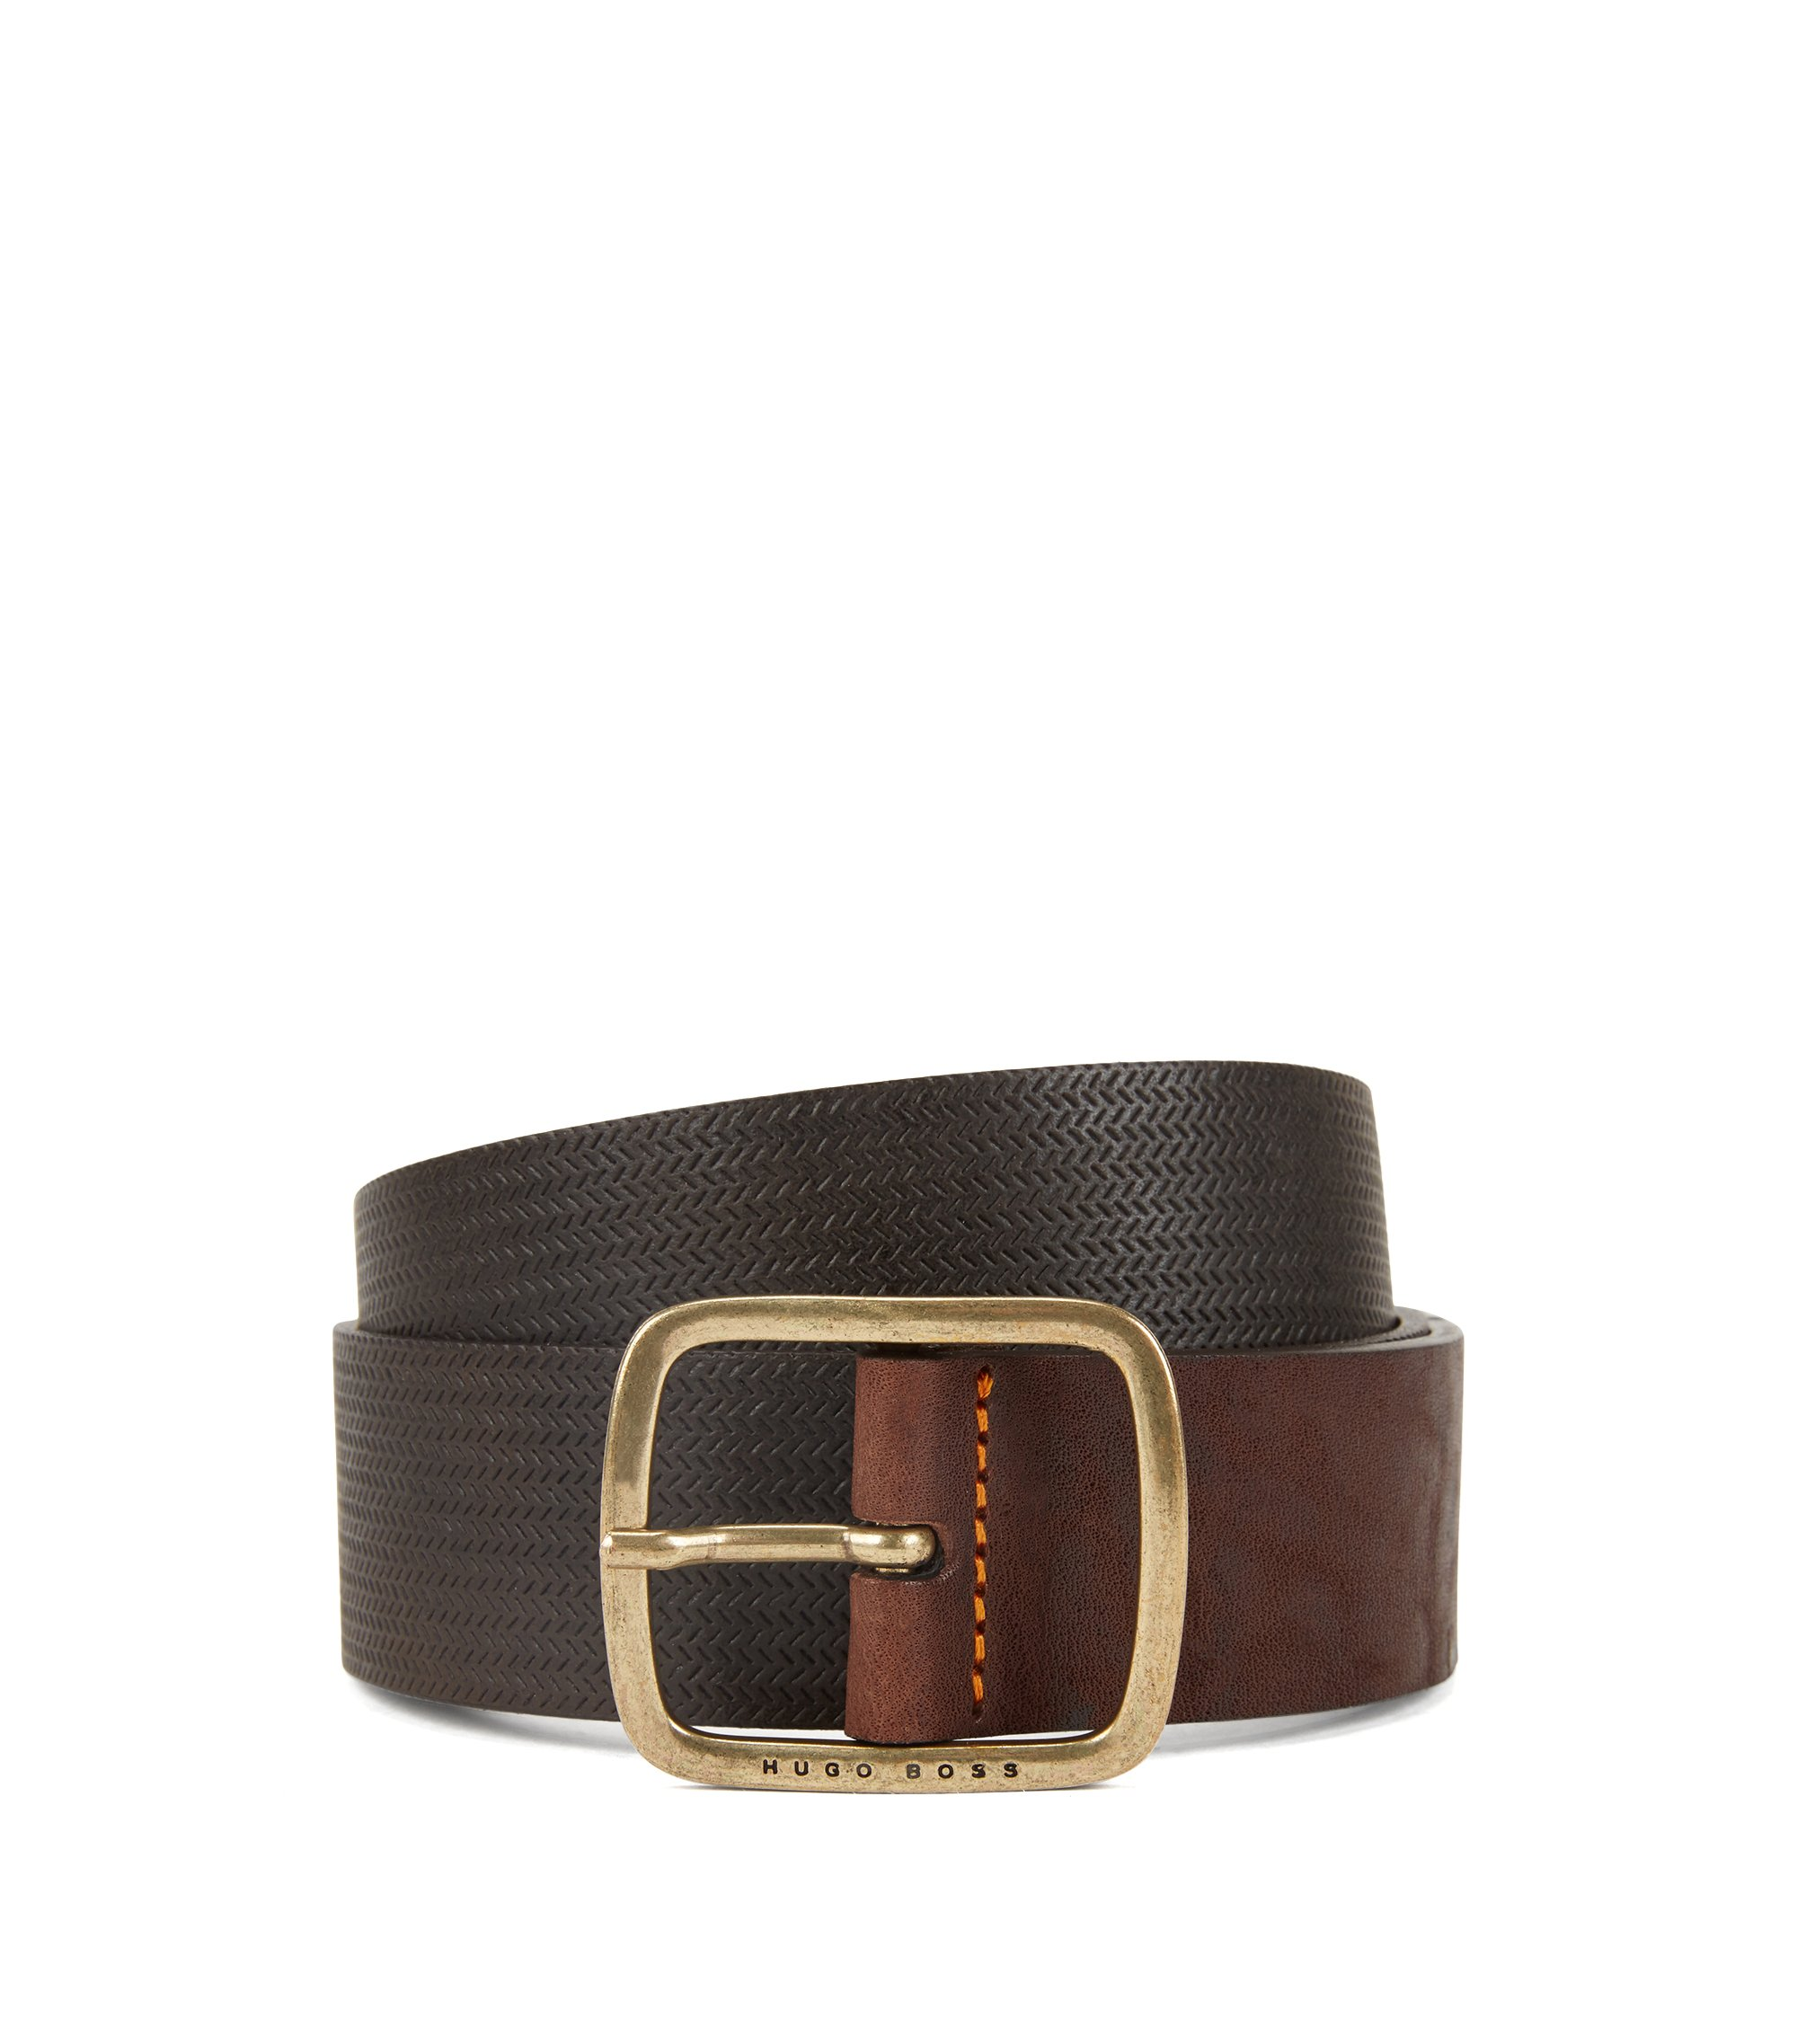 Vintage-look leather belt with antique-effect hardware, Dark Brown